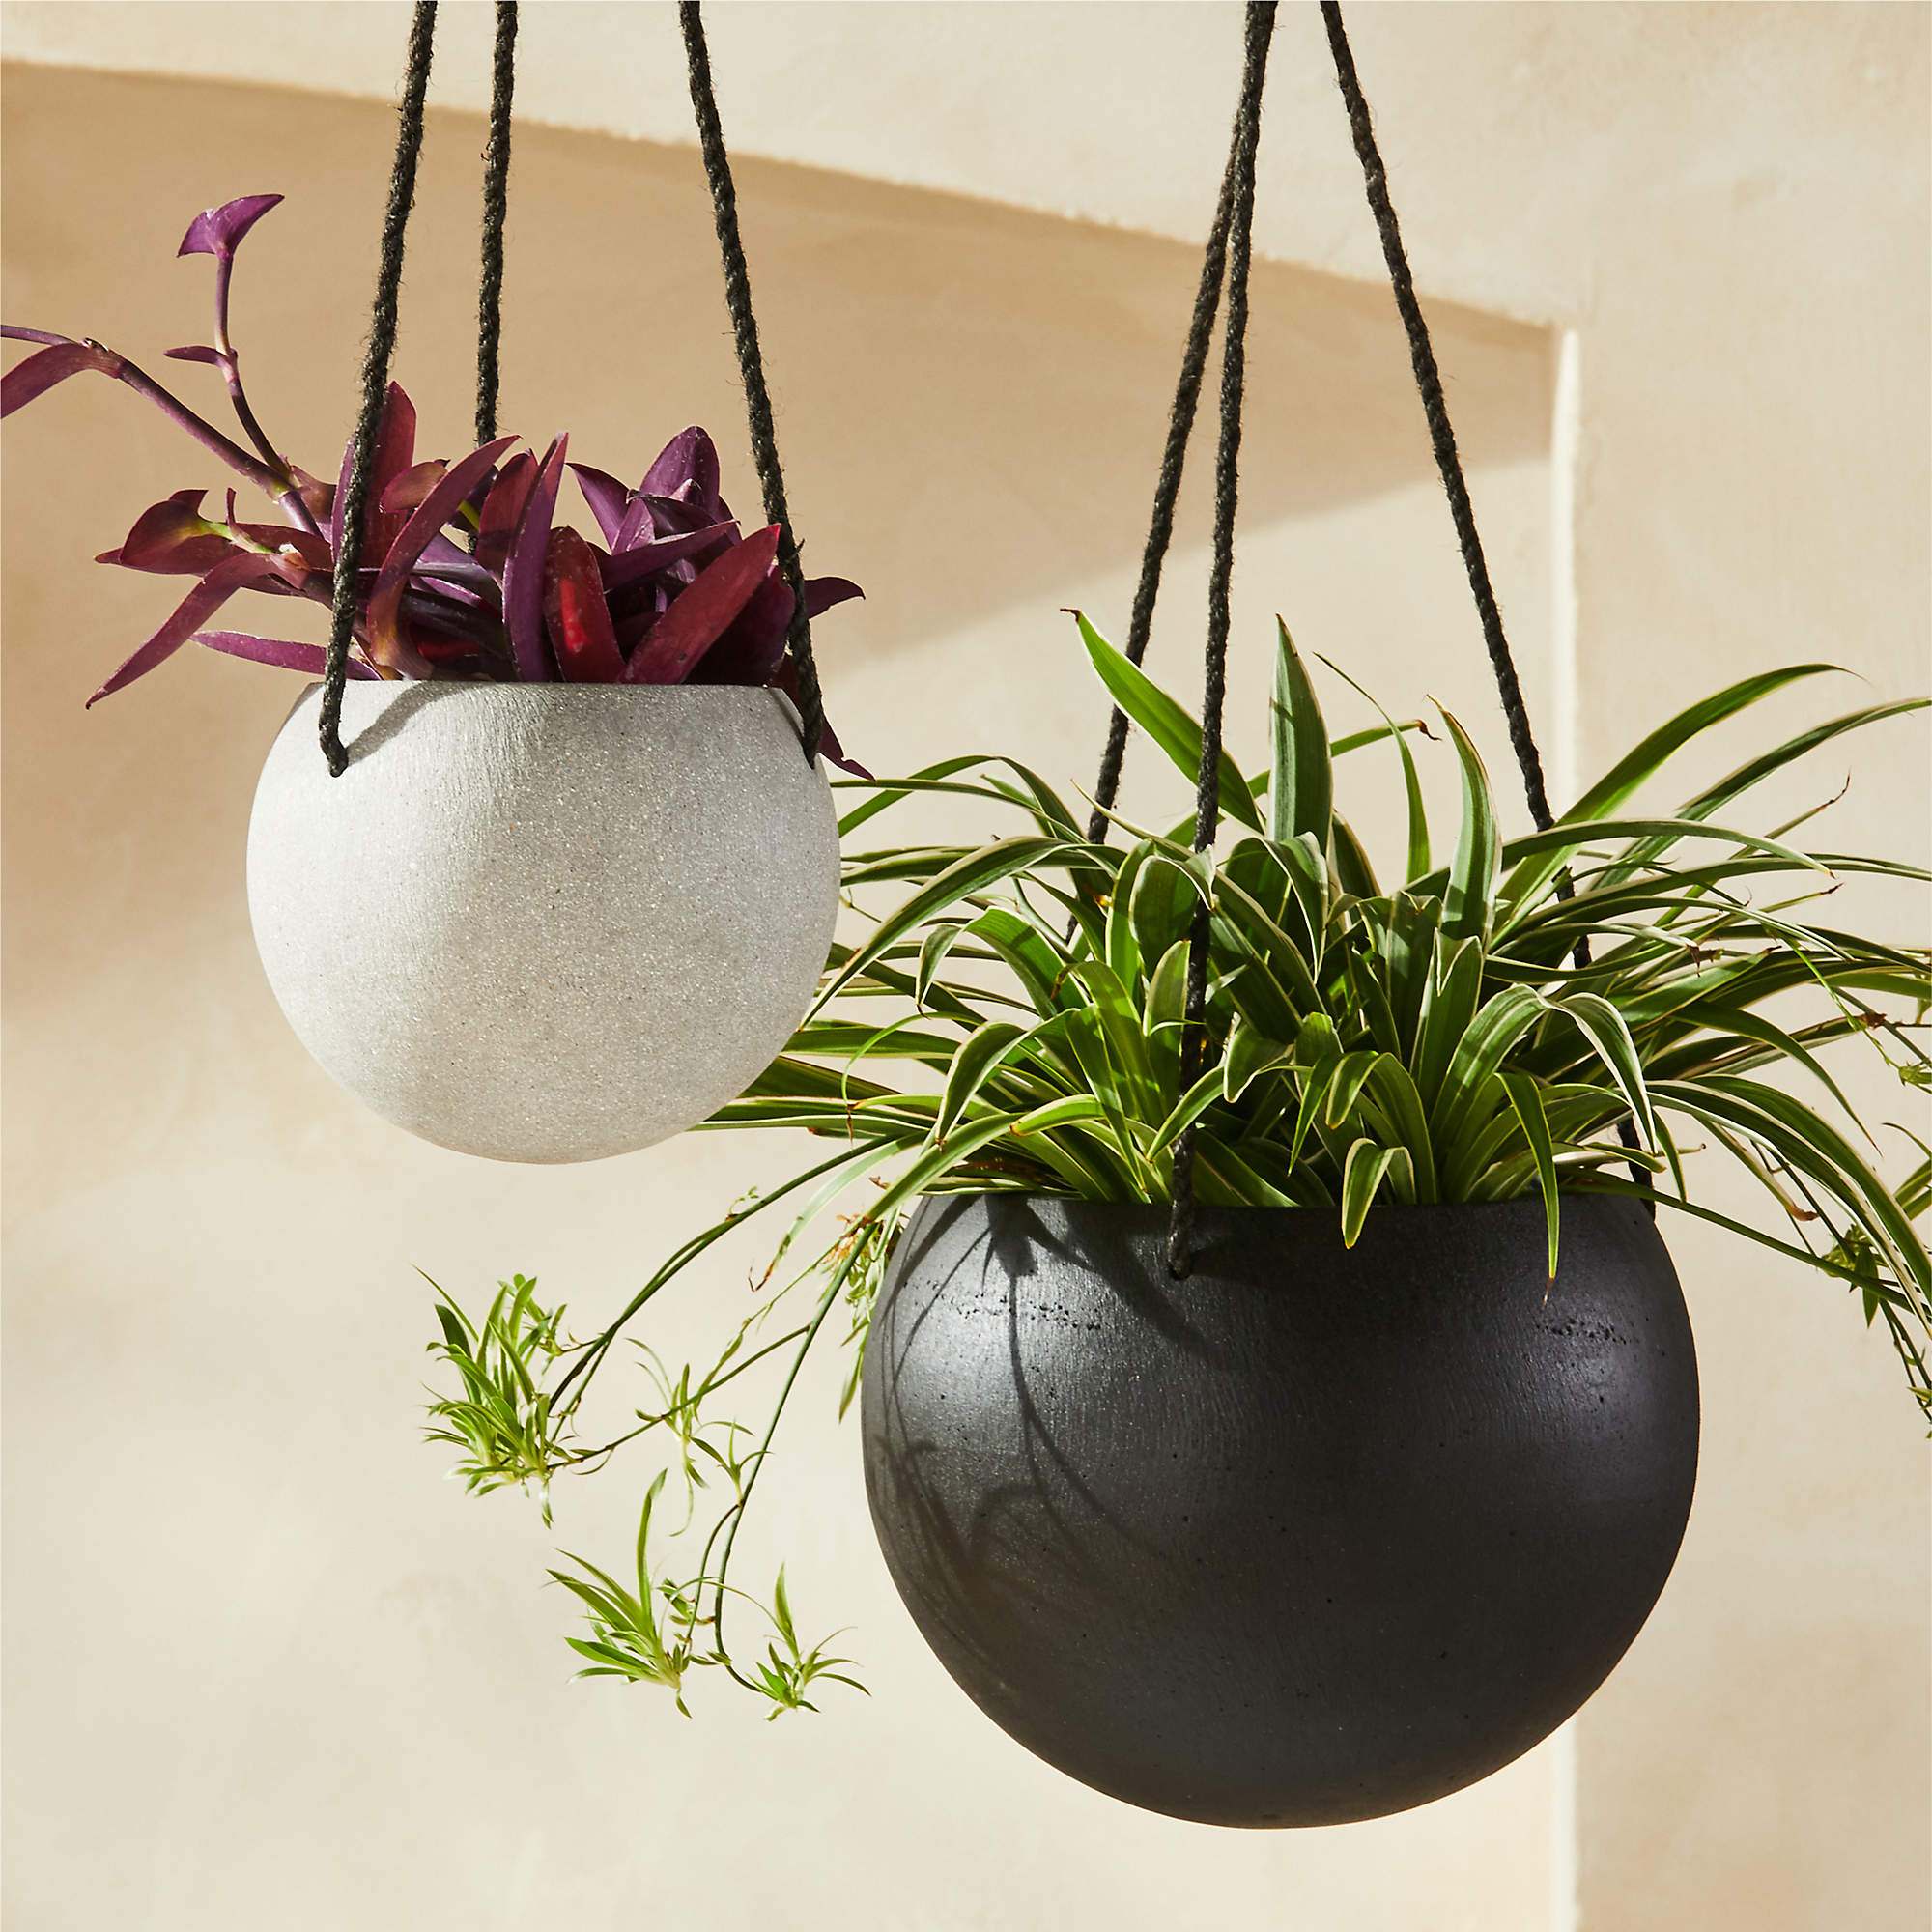 Image may contain: Sphere, Vase, Plant, Pottery, Potted Plant, Jar, and Planter